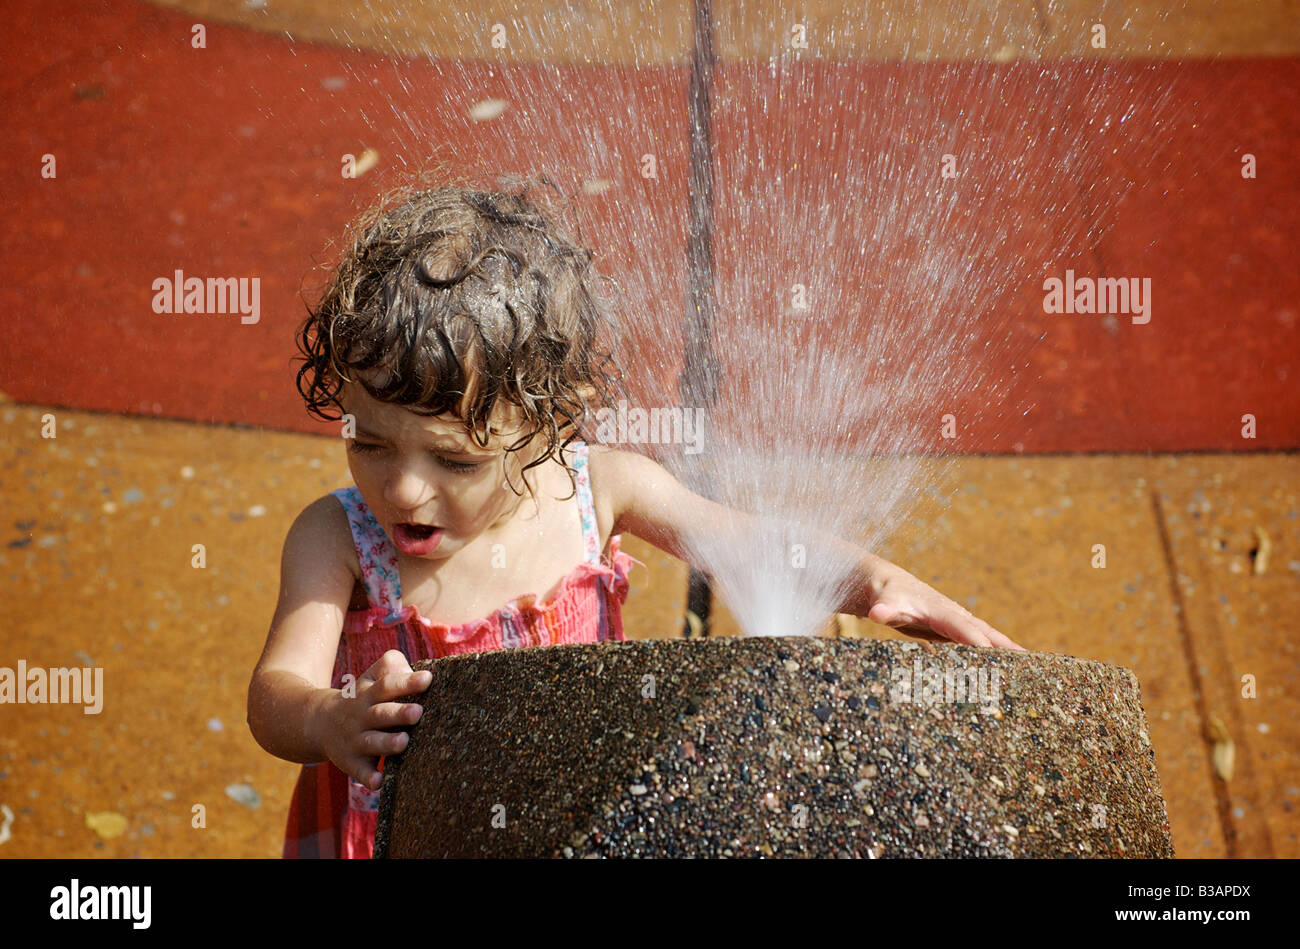 Child sprayed by water fountain at urban playground in Brooklyn New York - Stock Image